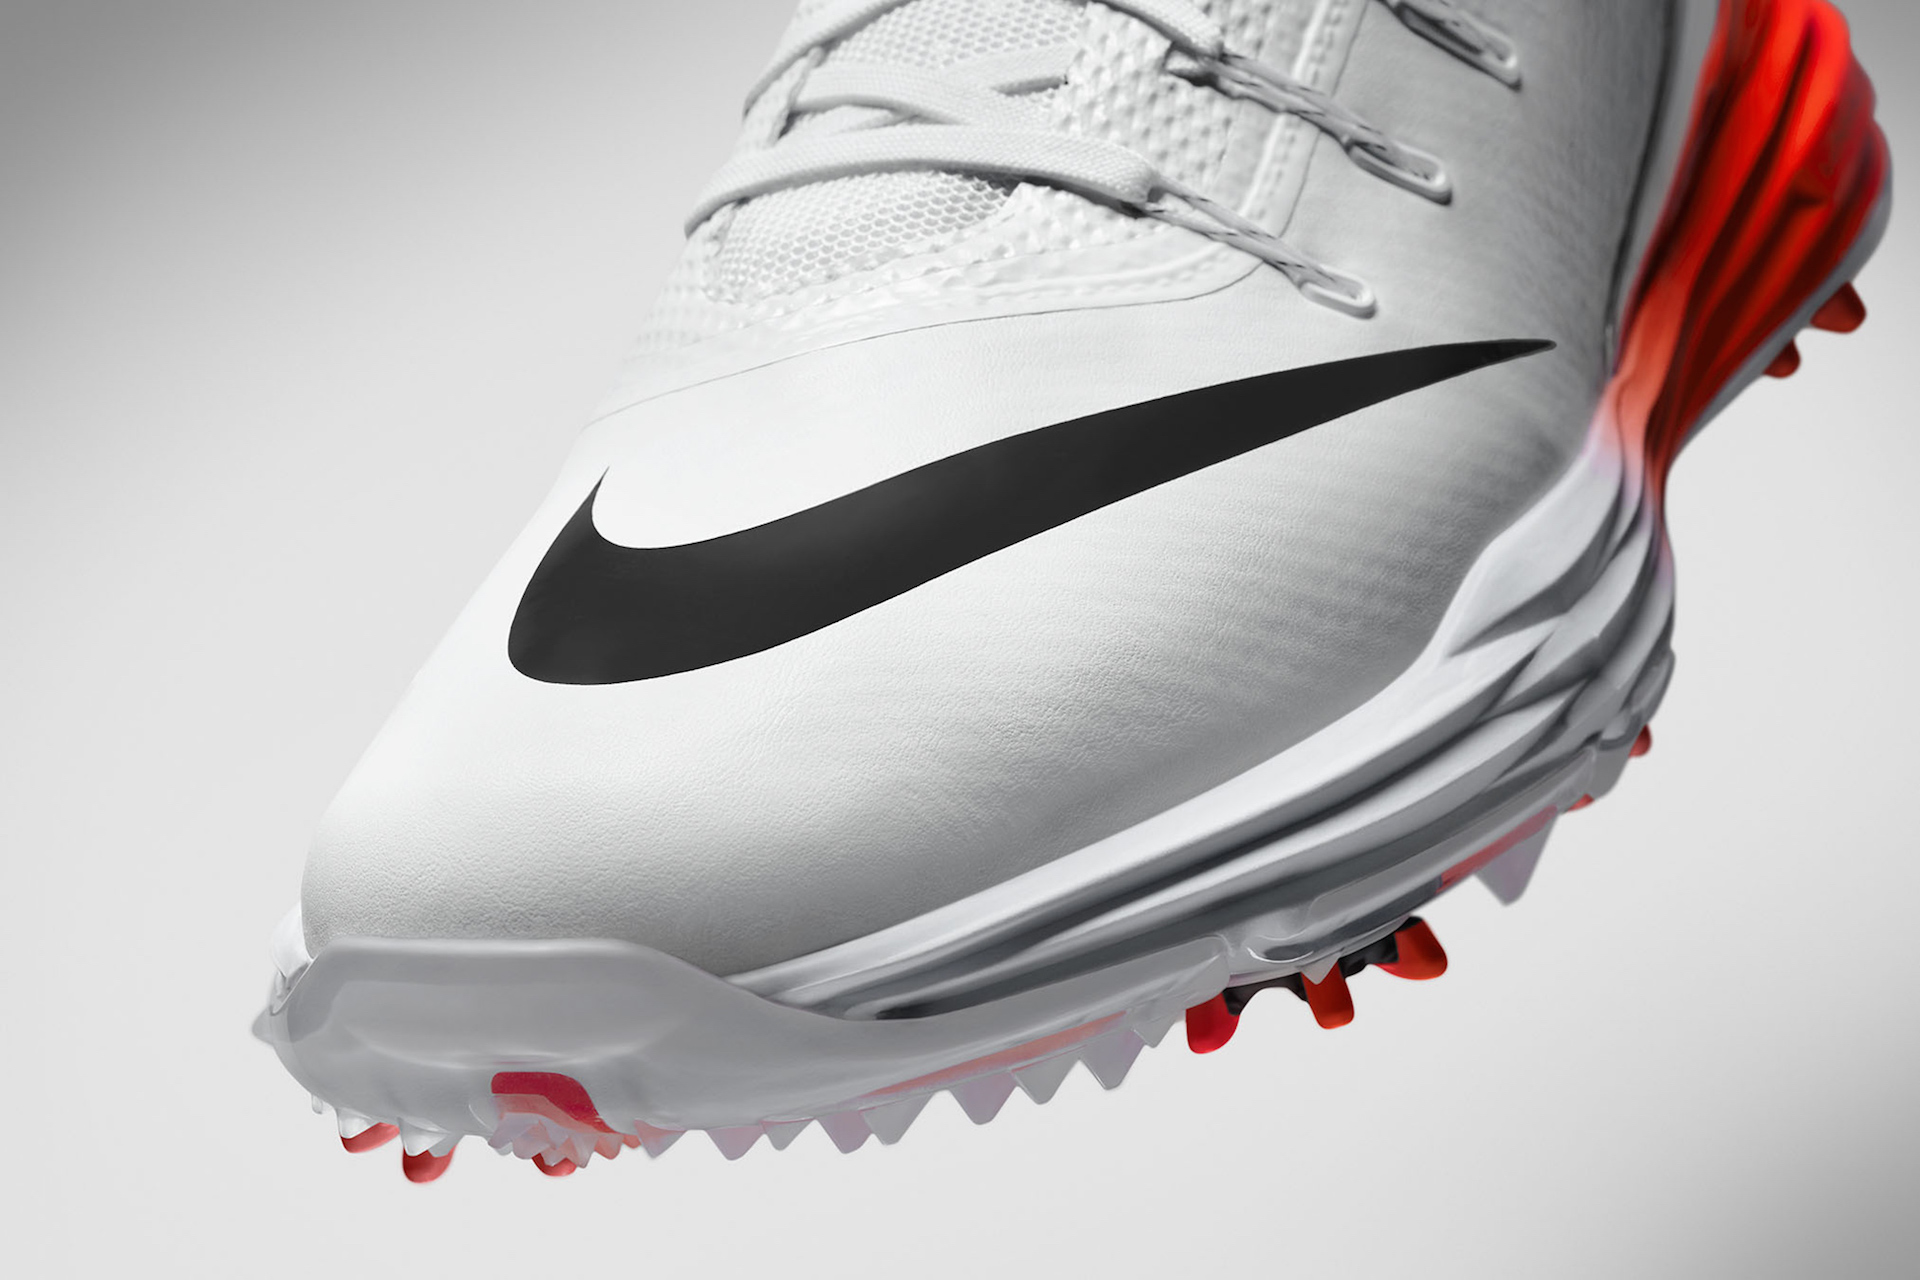 Rory's new Nike Lunar Control 4 Golf Shoes